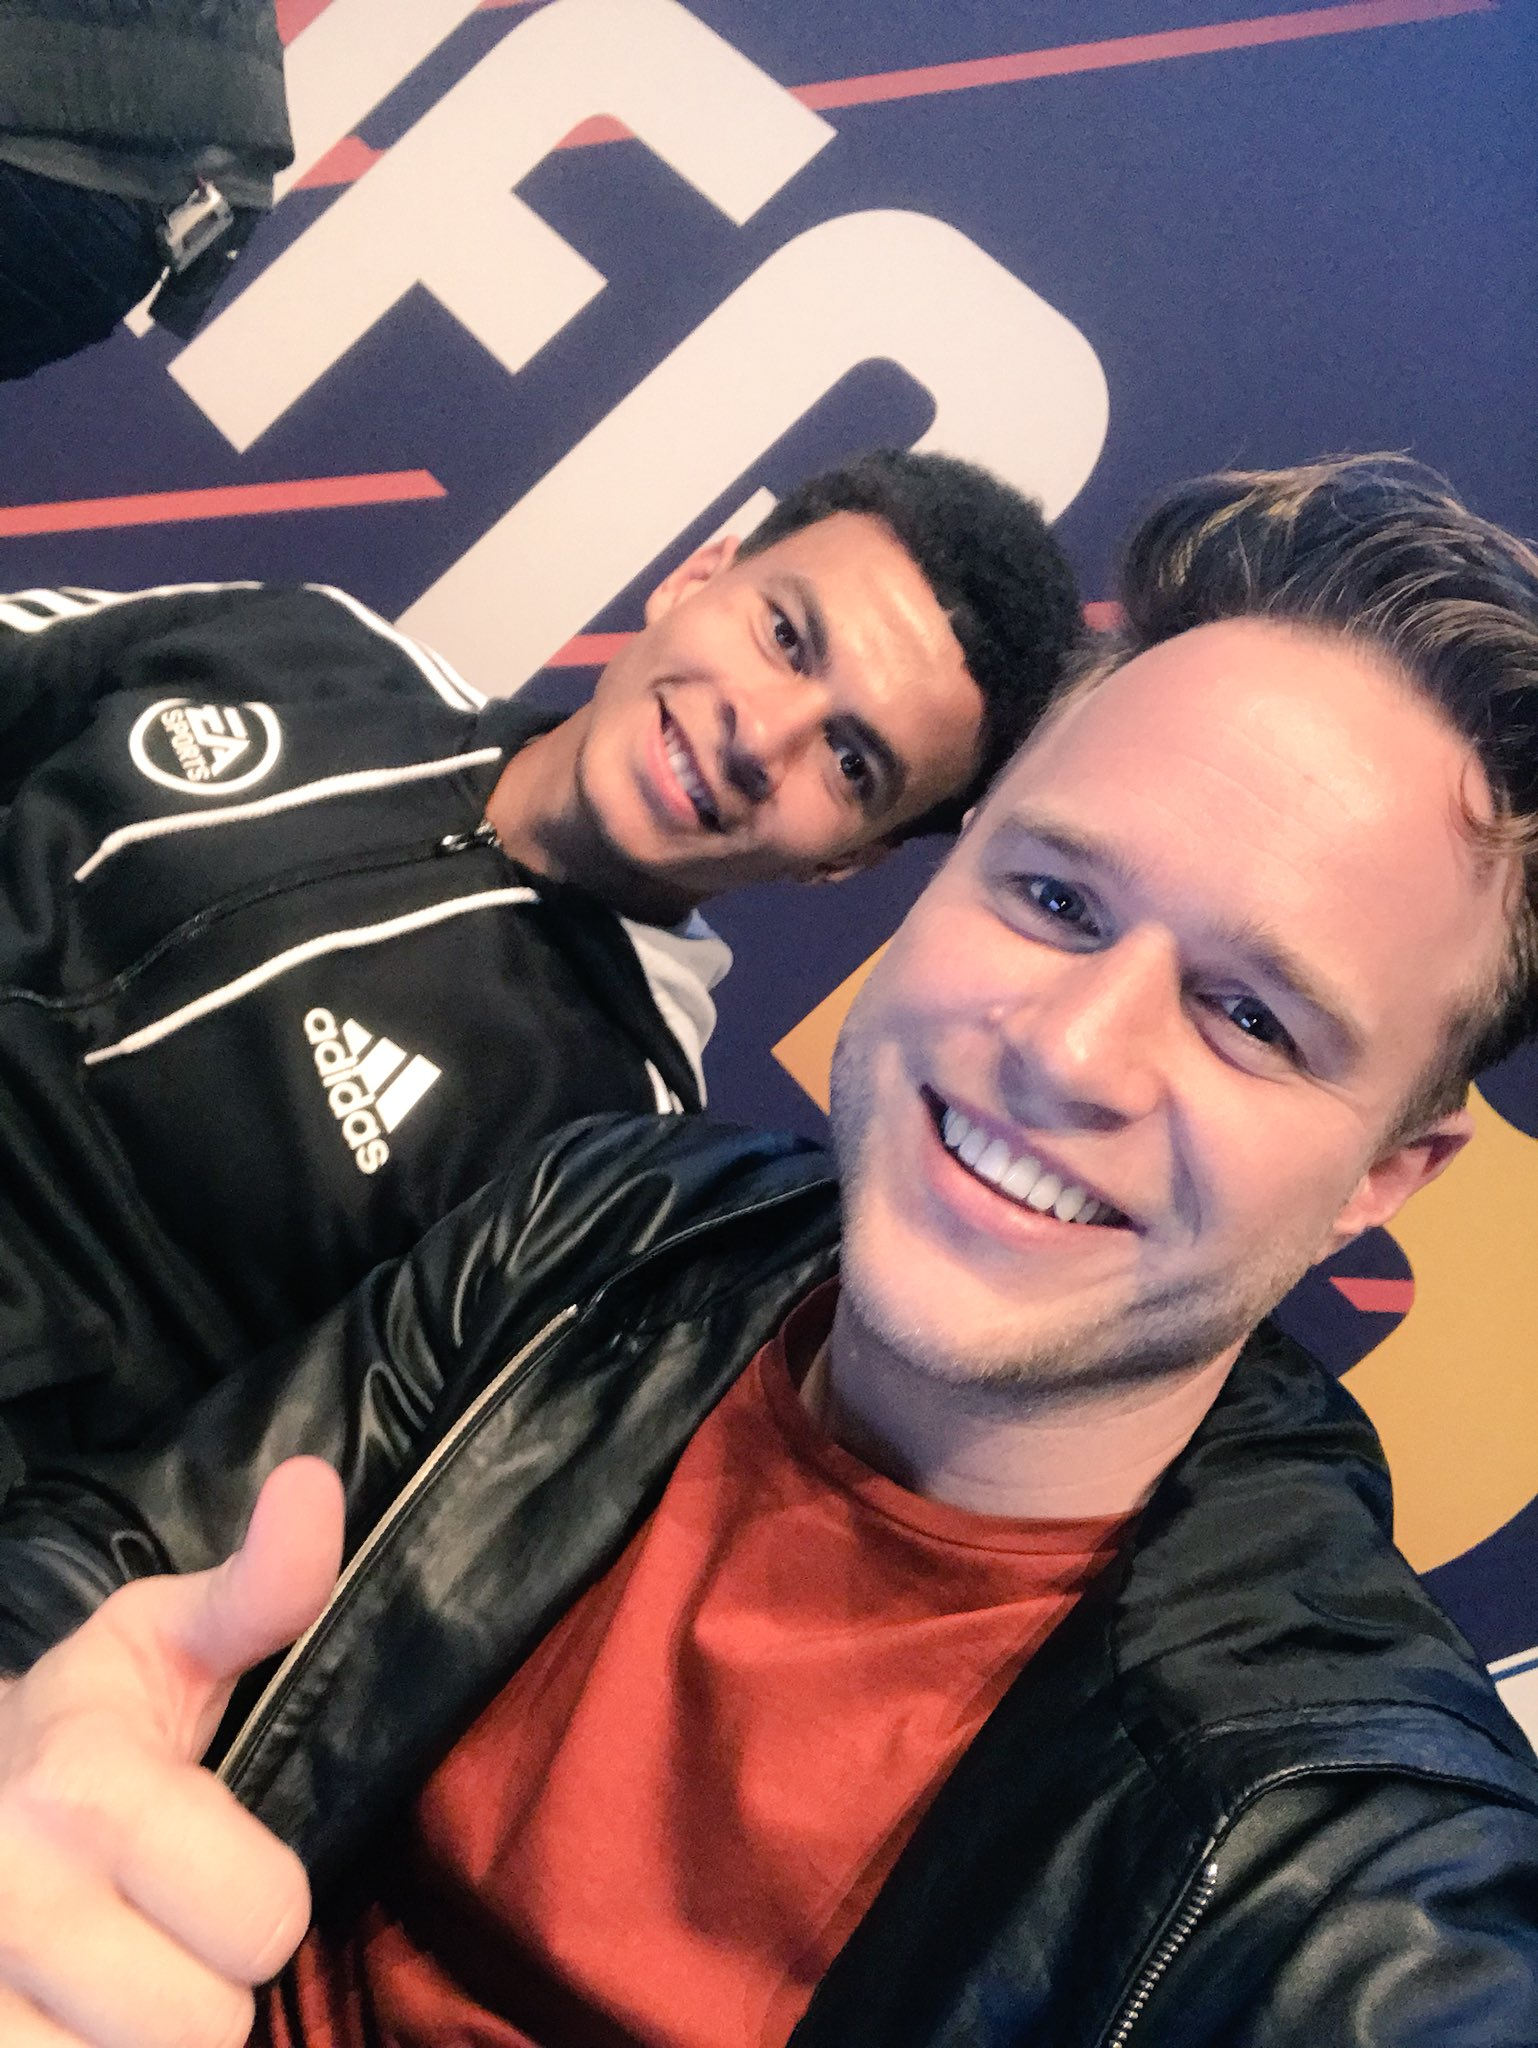 What a game!! Buzzing I played it with this man #FIFA18UKLAUNCH 🖕🏻😝 https://t.co/9EwVqyXt1x